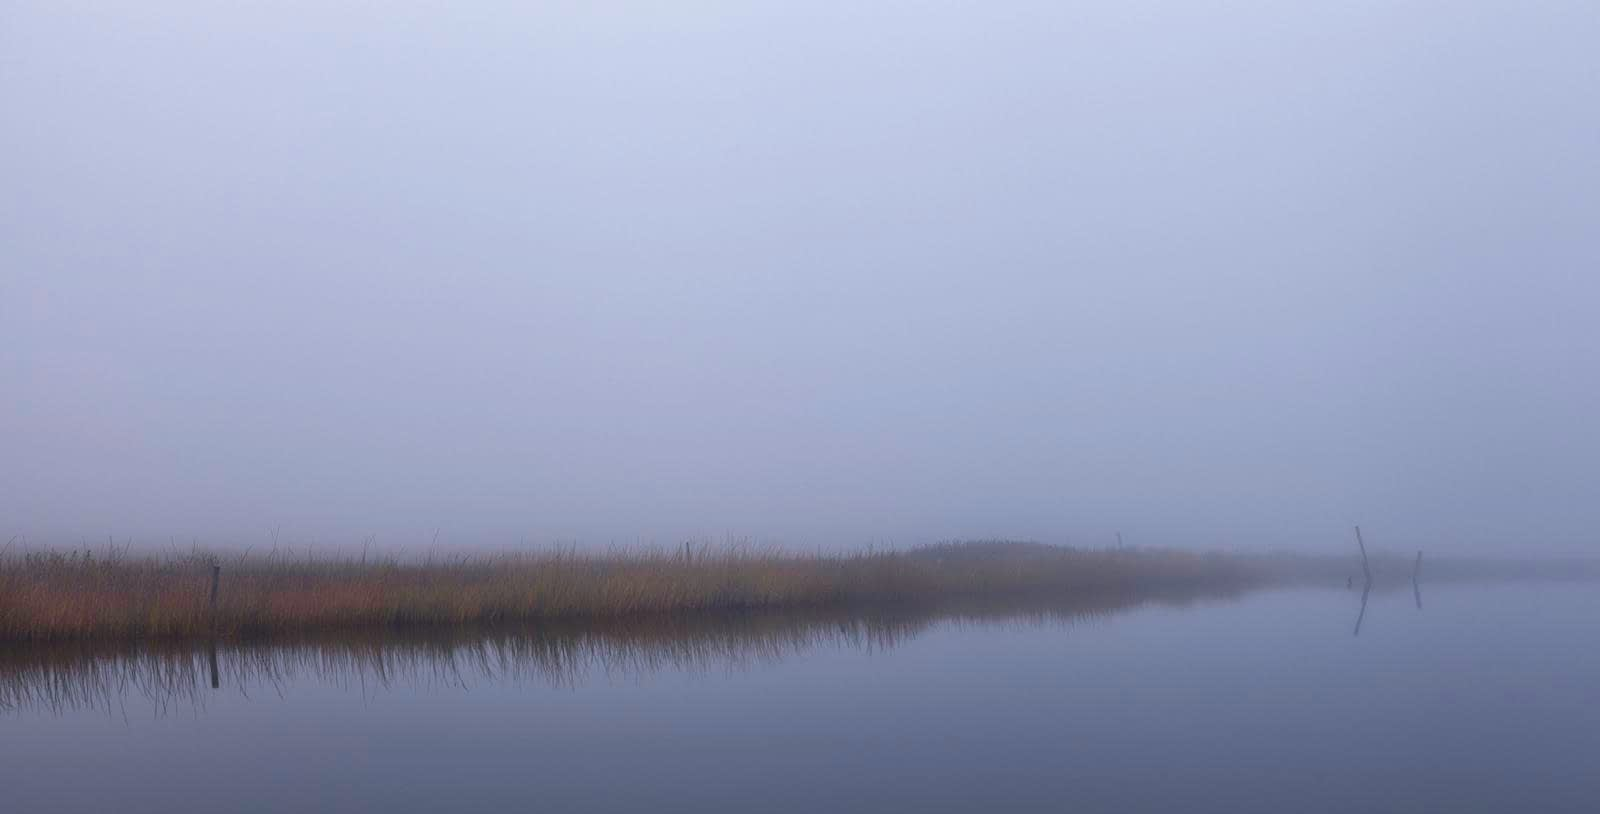 Oyster Creek Fog - Mood in Landscape Photography